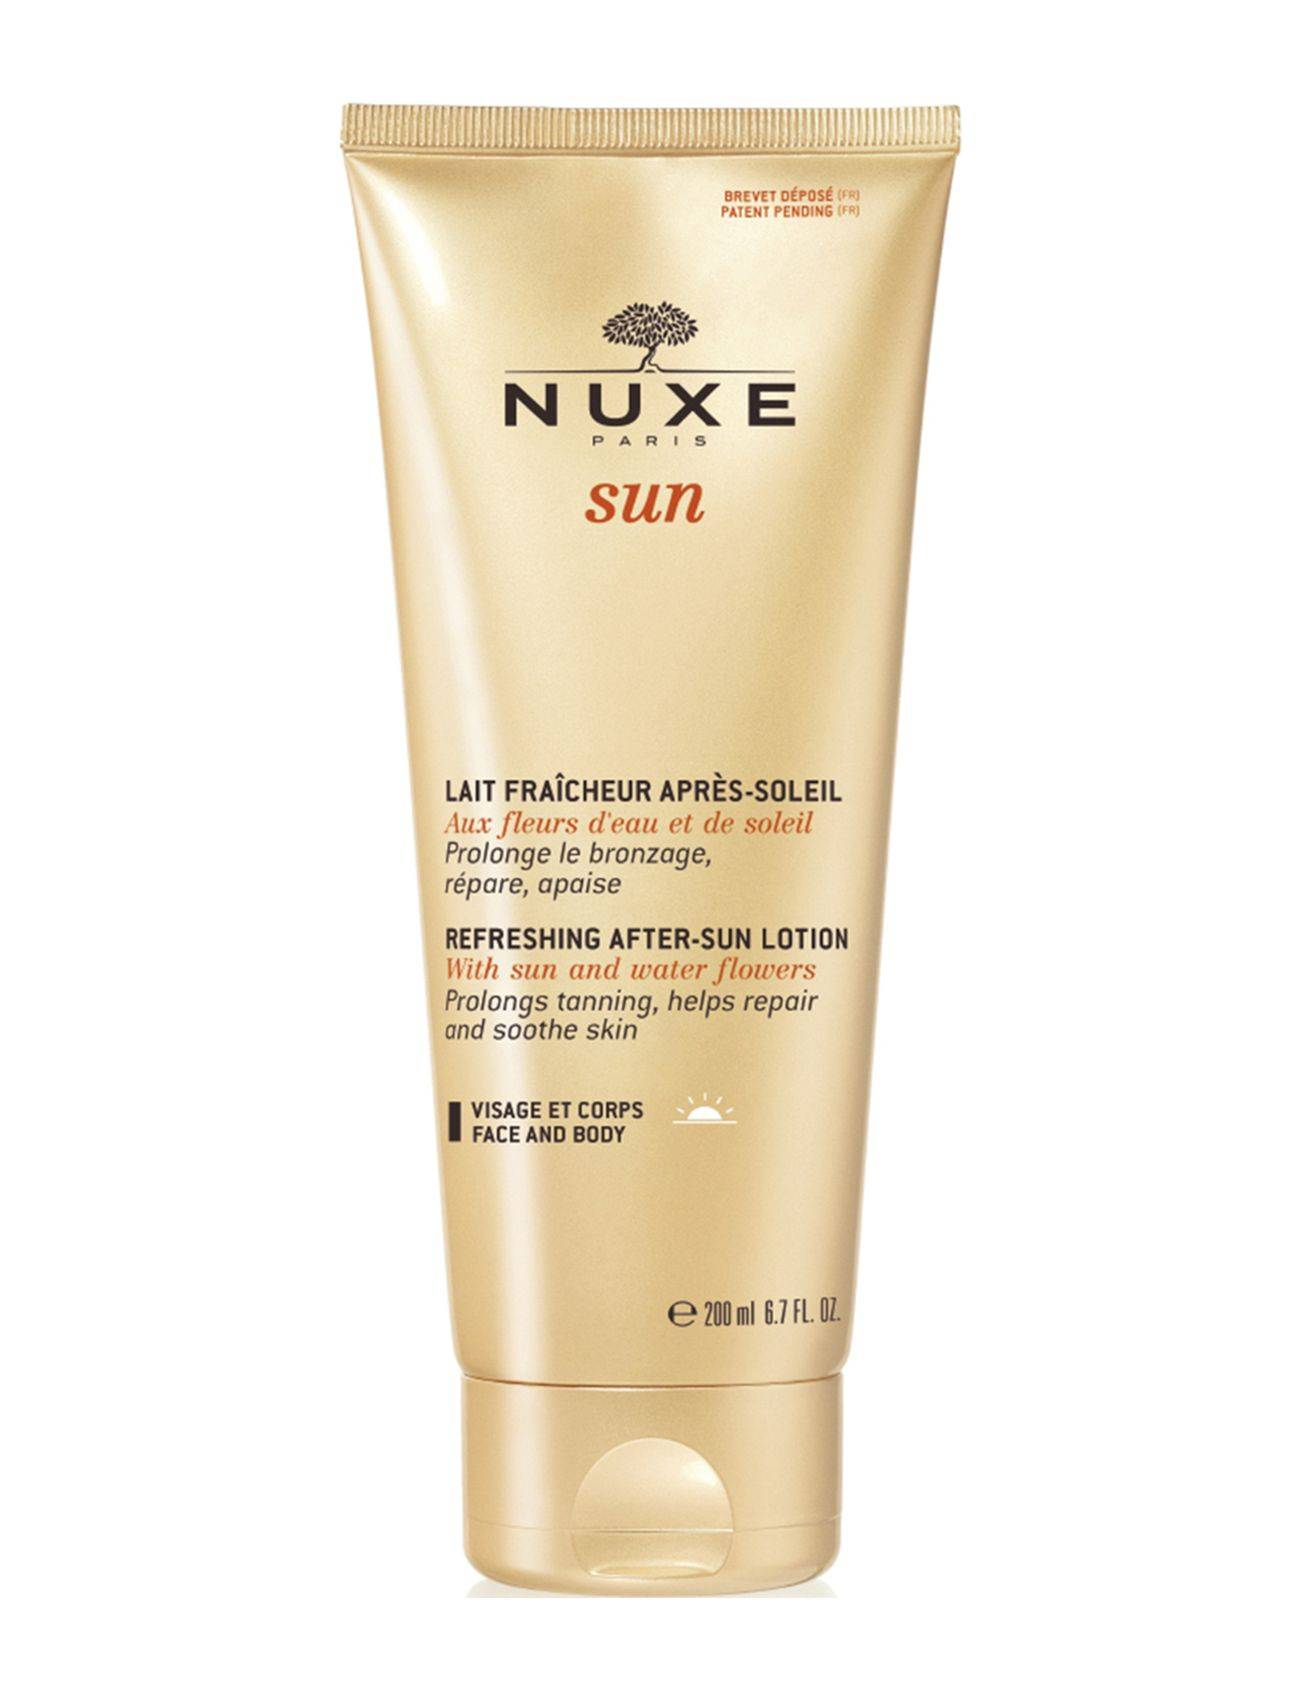 NUXE Refreshing After-Sun Milk